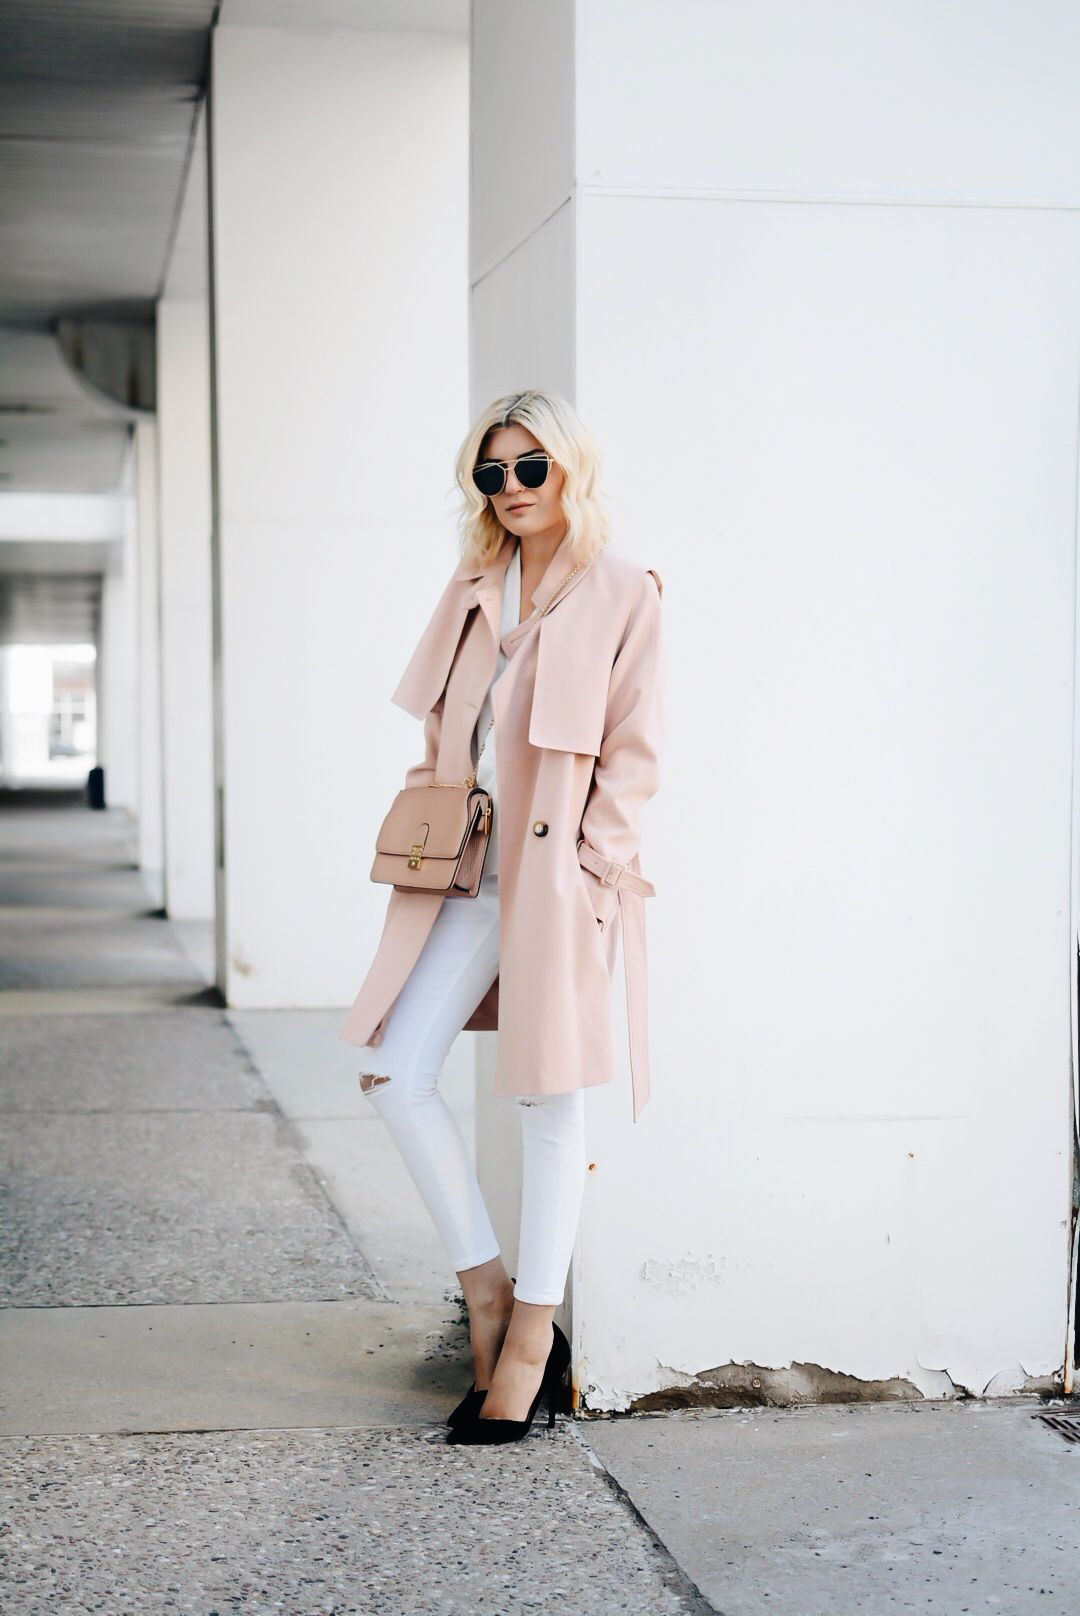 40 Trench Coat Outfits To Give You That Inspiration You Need Just The Design Pink Trench Coat Bloglovin Fashion Pastel Pink Coat [ 1616 x 1080 Pixel ]